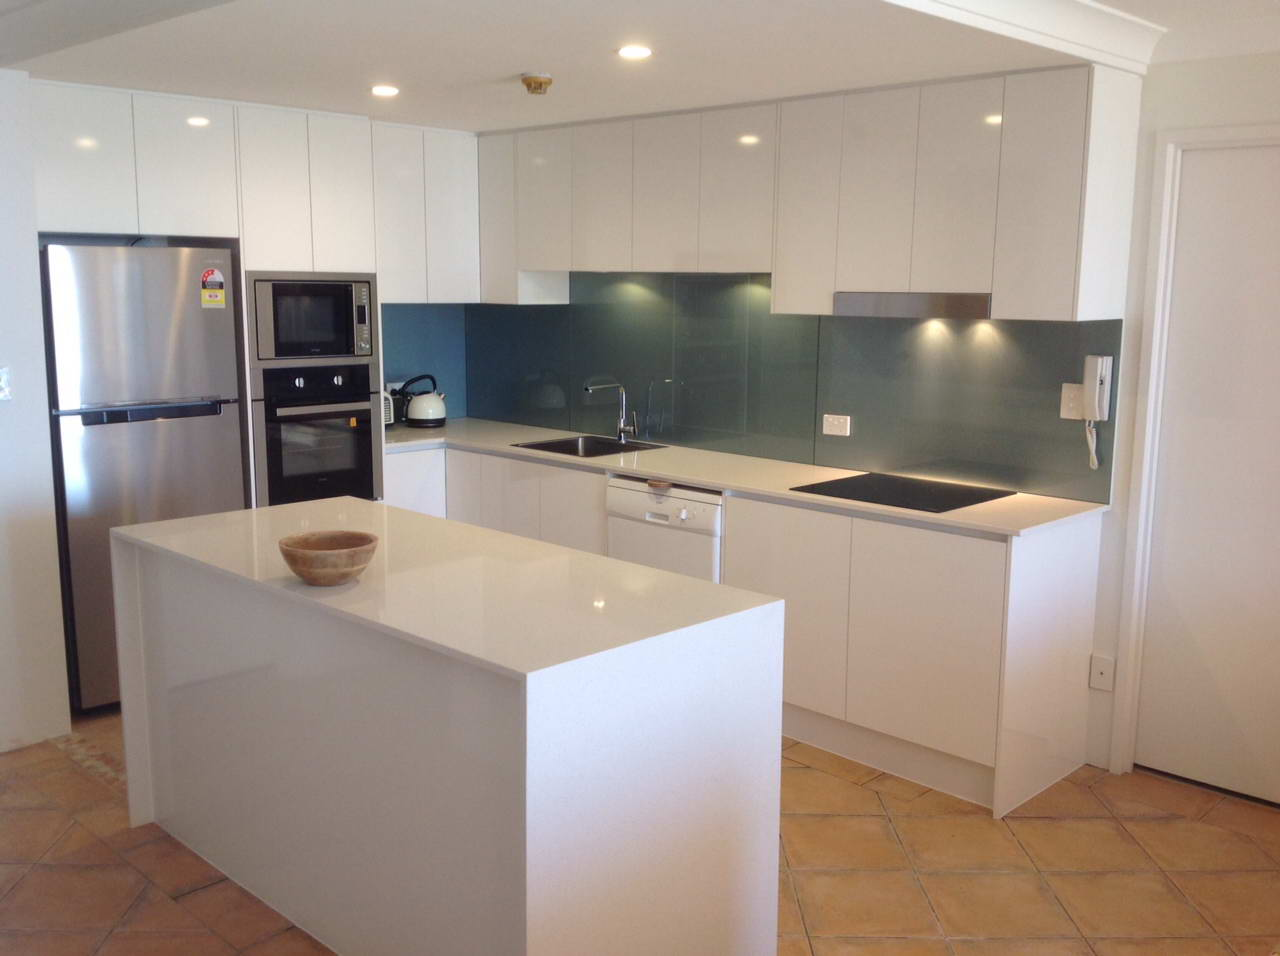 Kitchen Renovations - Gold Coast - Kitchen Brokers Queensland - Roy & Rae - Tugun